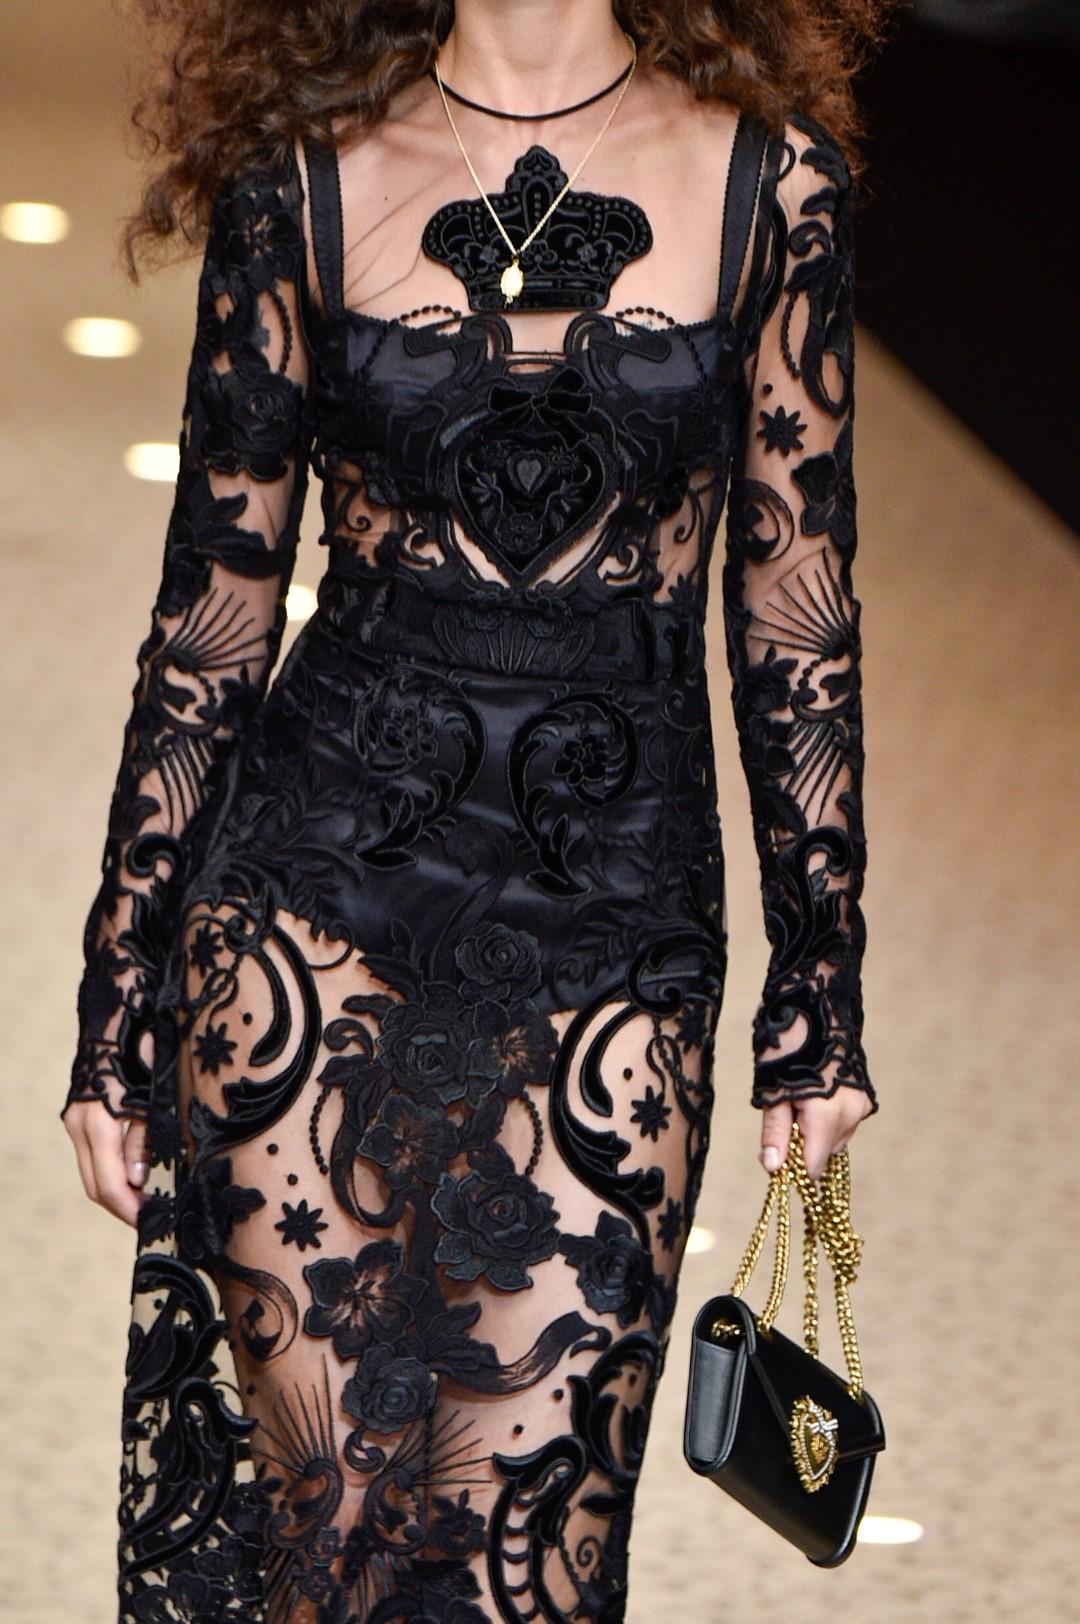 Velvet, lace, feathers and sparkling flares: the evening dress is sparkling